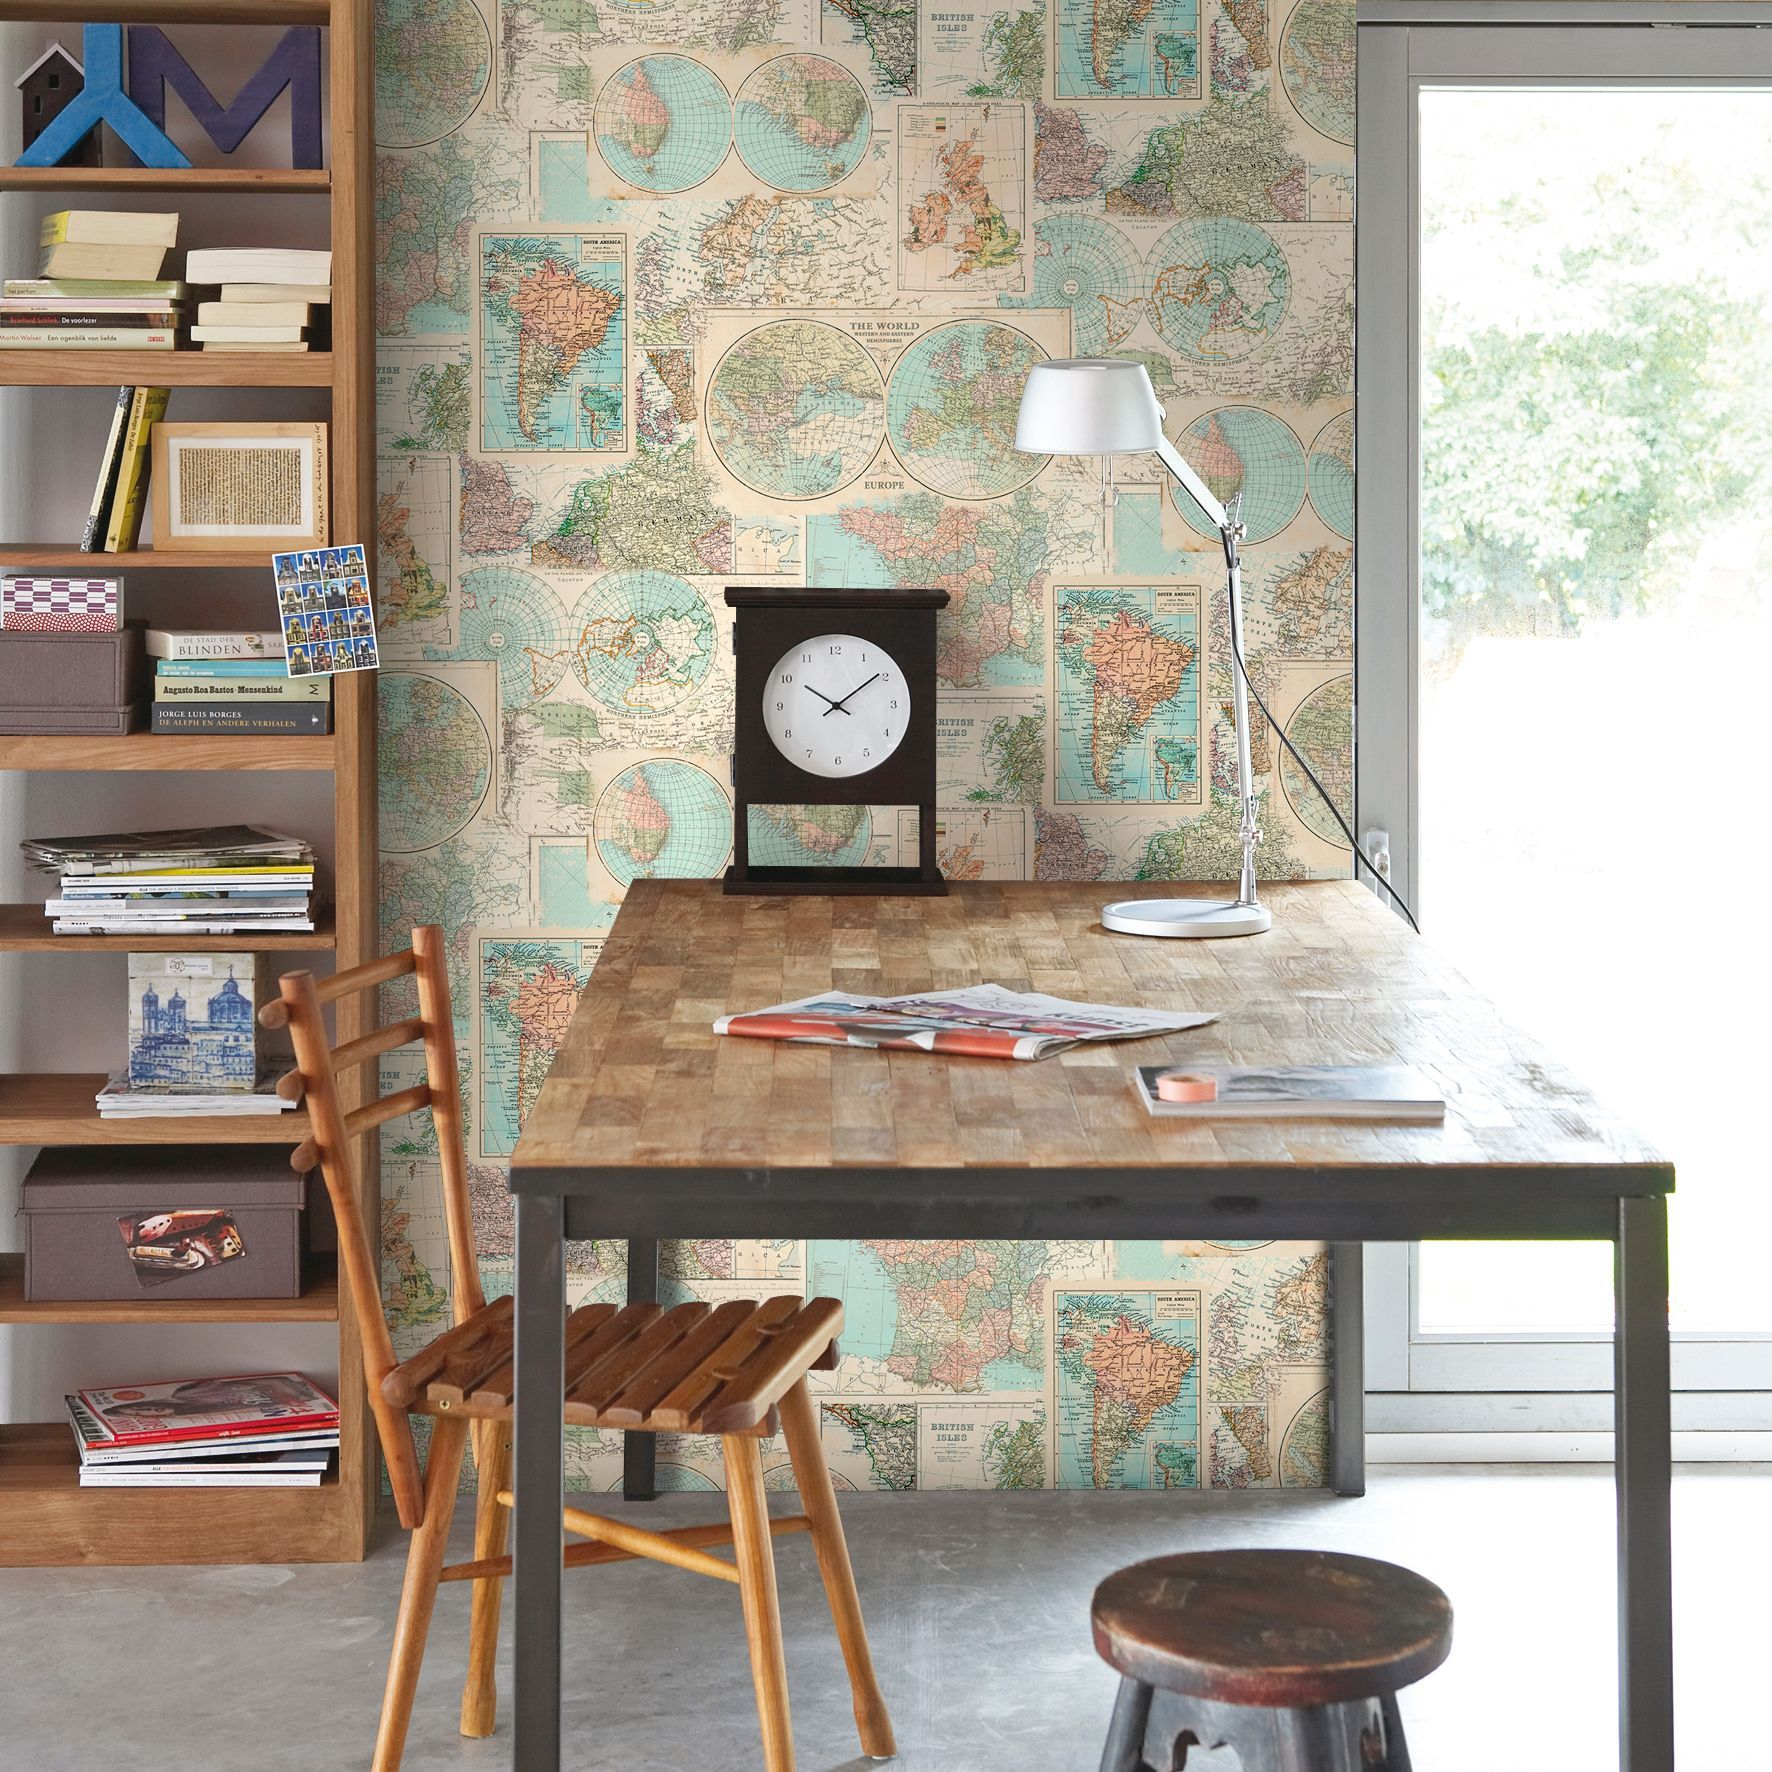 graham \u0026 brown fresco globe cream \u0026 blue maps wallpapergraham \u0026 brown fresco globe cream \u0026 blue maps wallpaper departments diy at b\u0026q